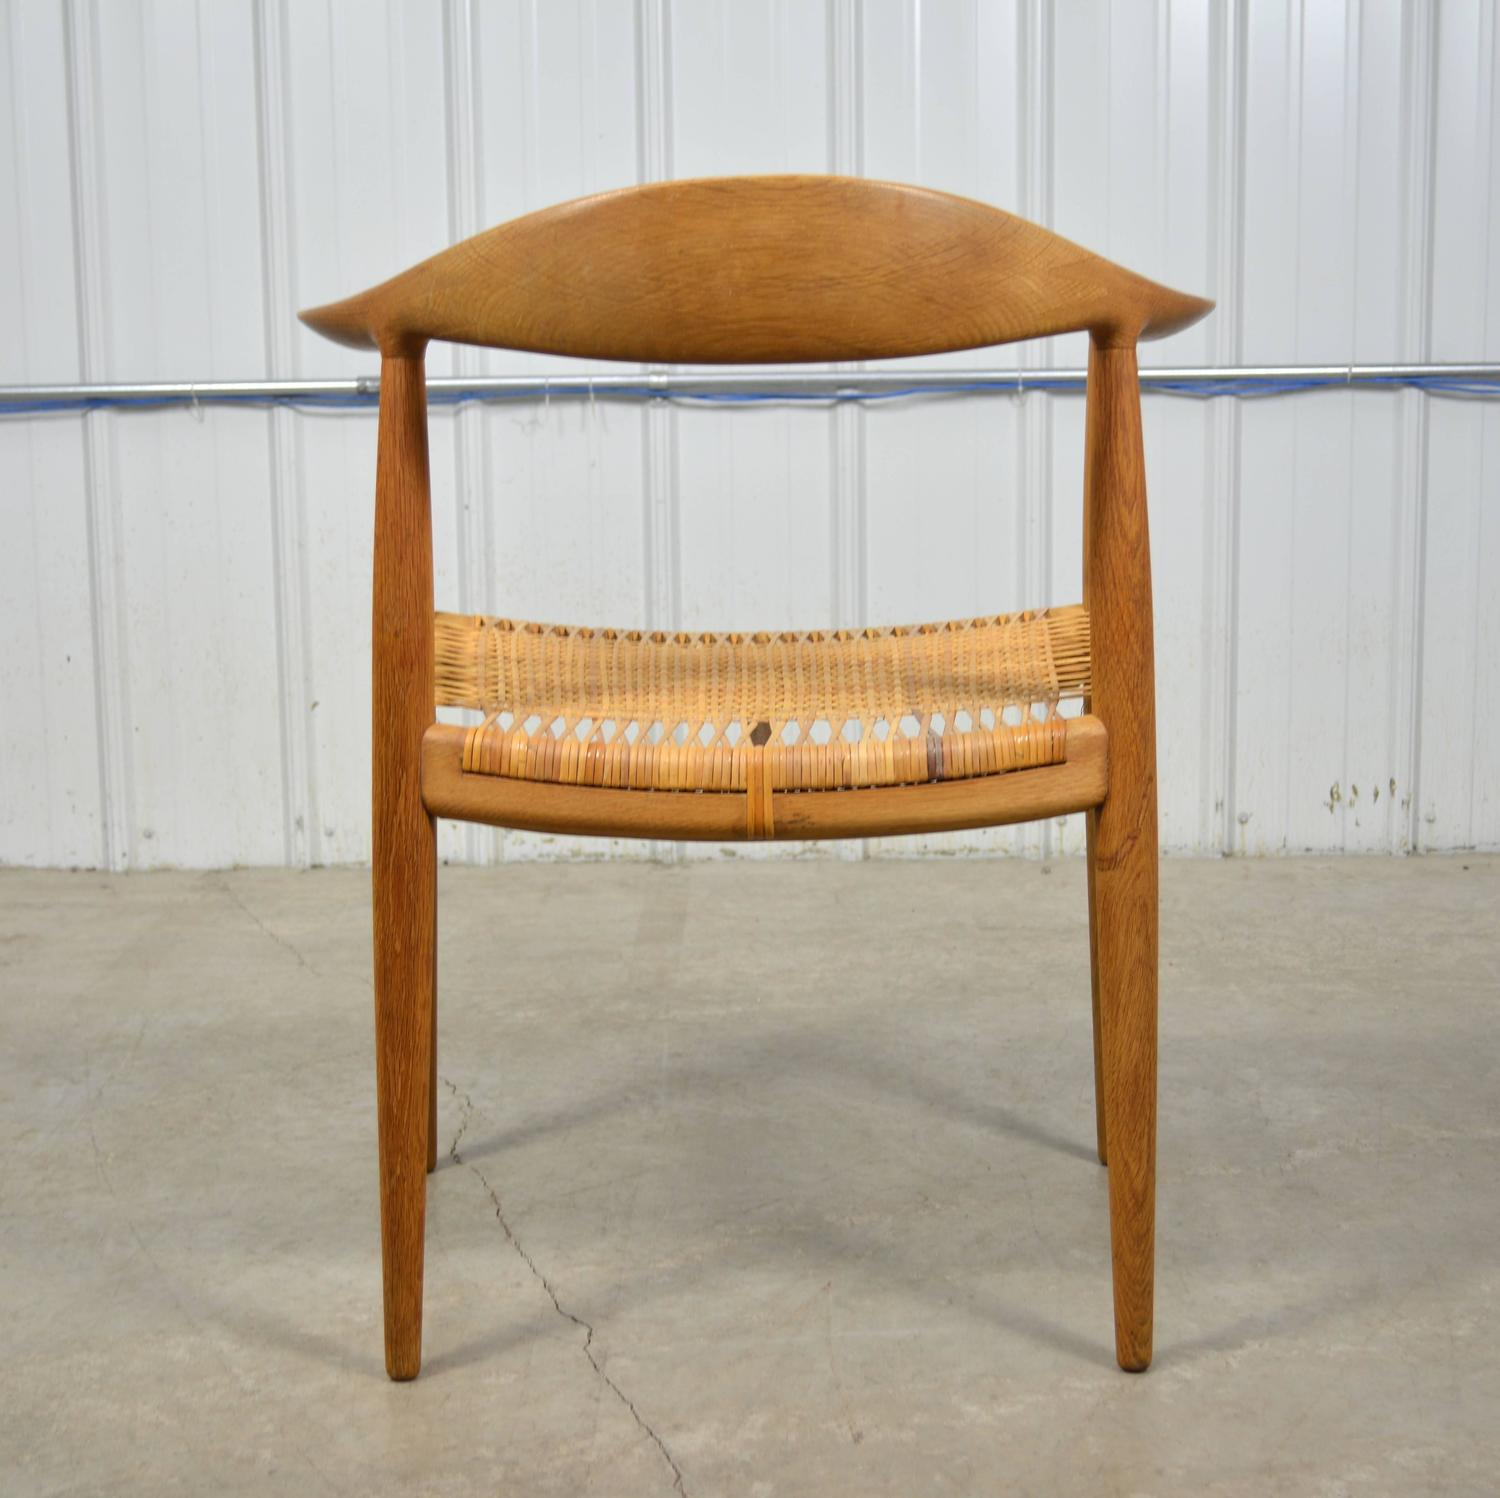 Hans Wegner Round Chair In Oak And Cane At 1stdibs. Full resolution  image, nominally Width 1500 Height 1498 pixels, image with #4B270C.